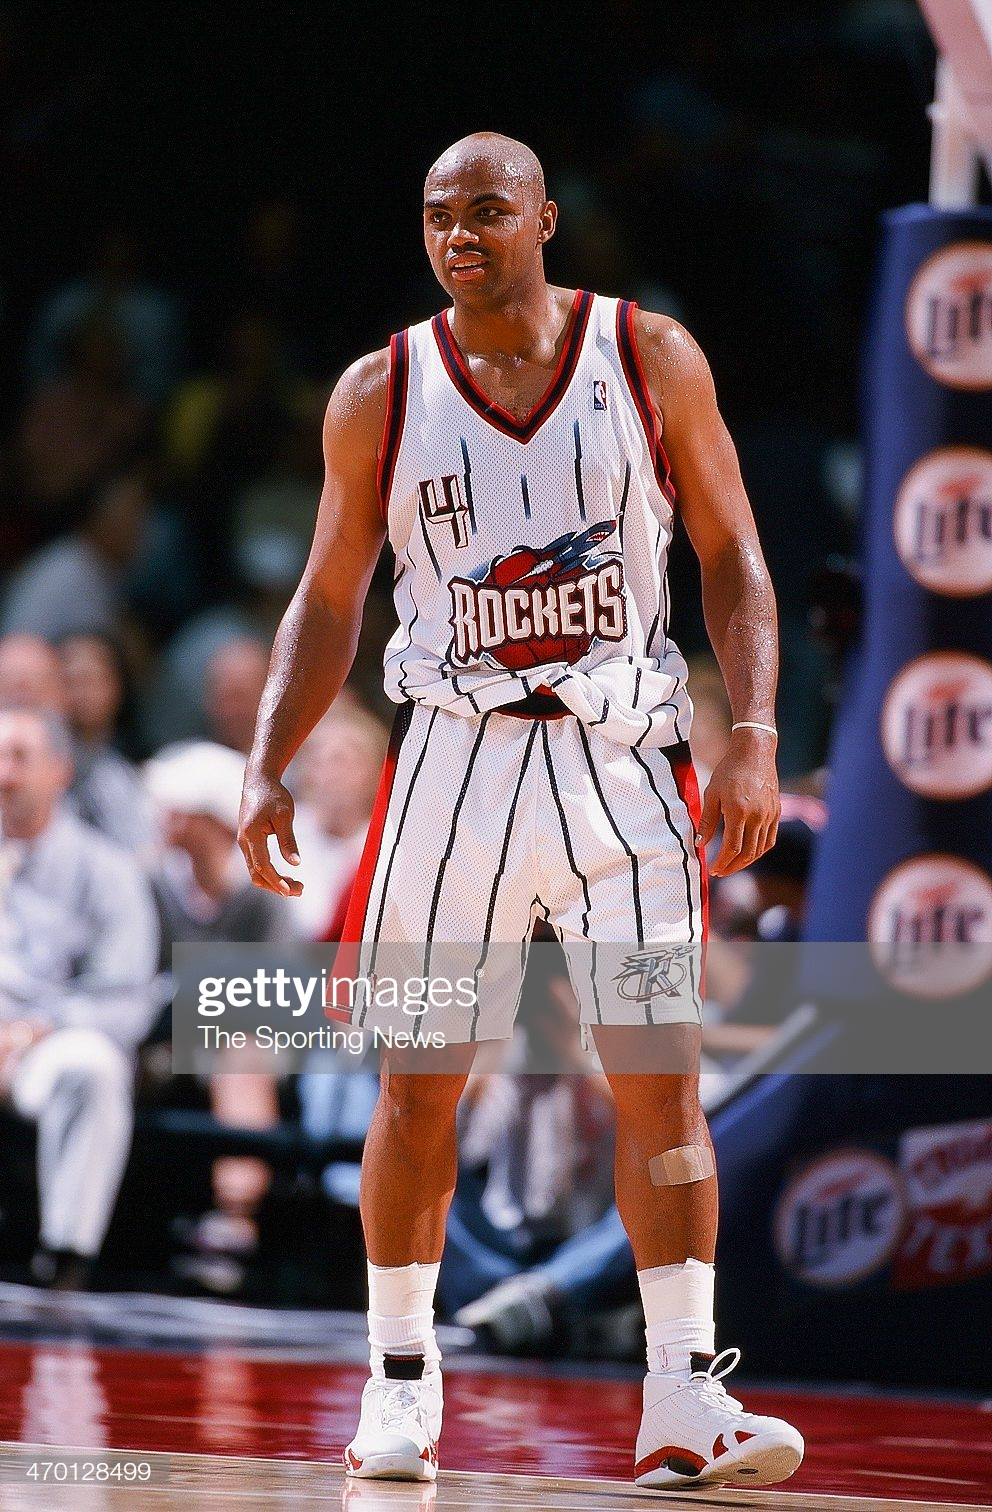 Charles Barkley Of The Houston Rockets During The Game Against The Charles Barkley Houston Rockets Charles